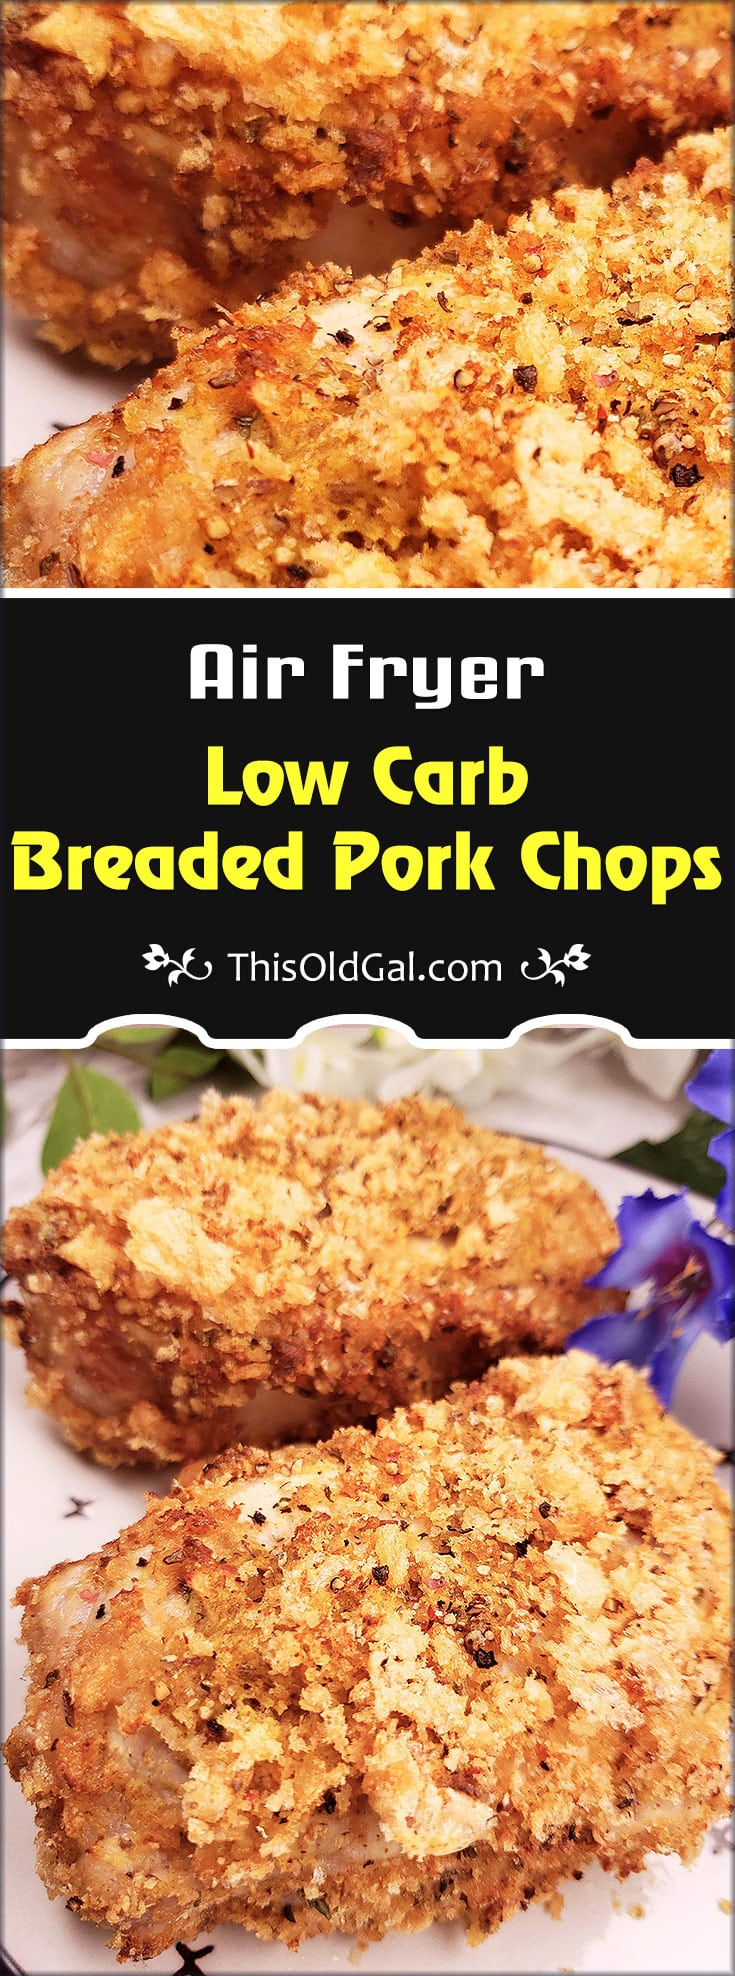 Air Fryer Low Carb and Keto Breaded Pork Chops